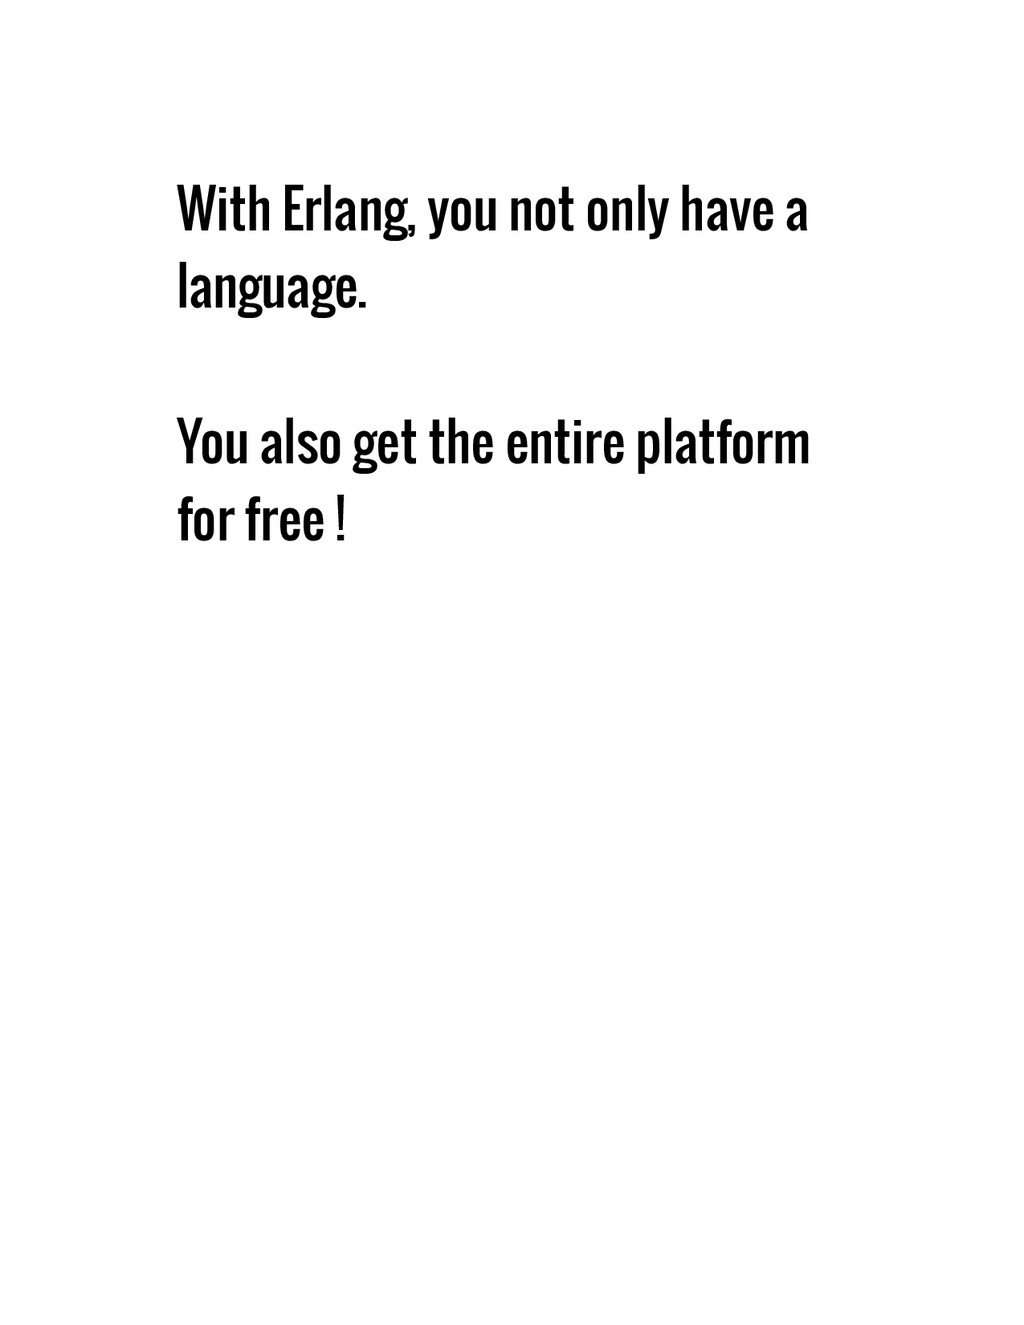 With Erlang, you not only have a language. You ...